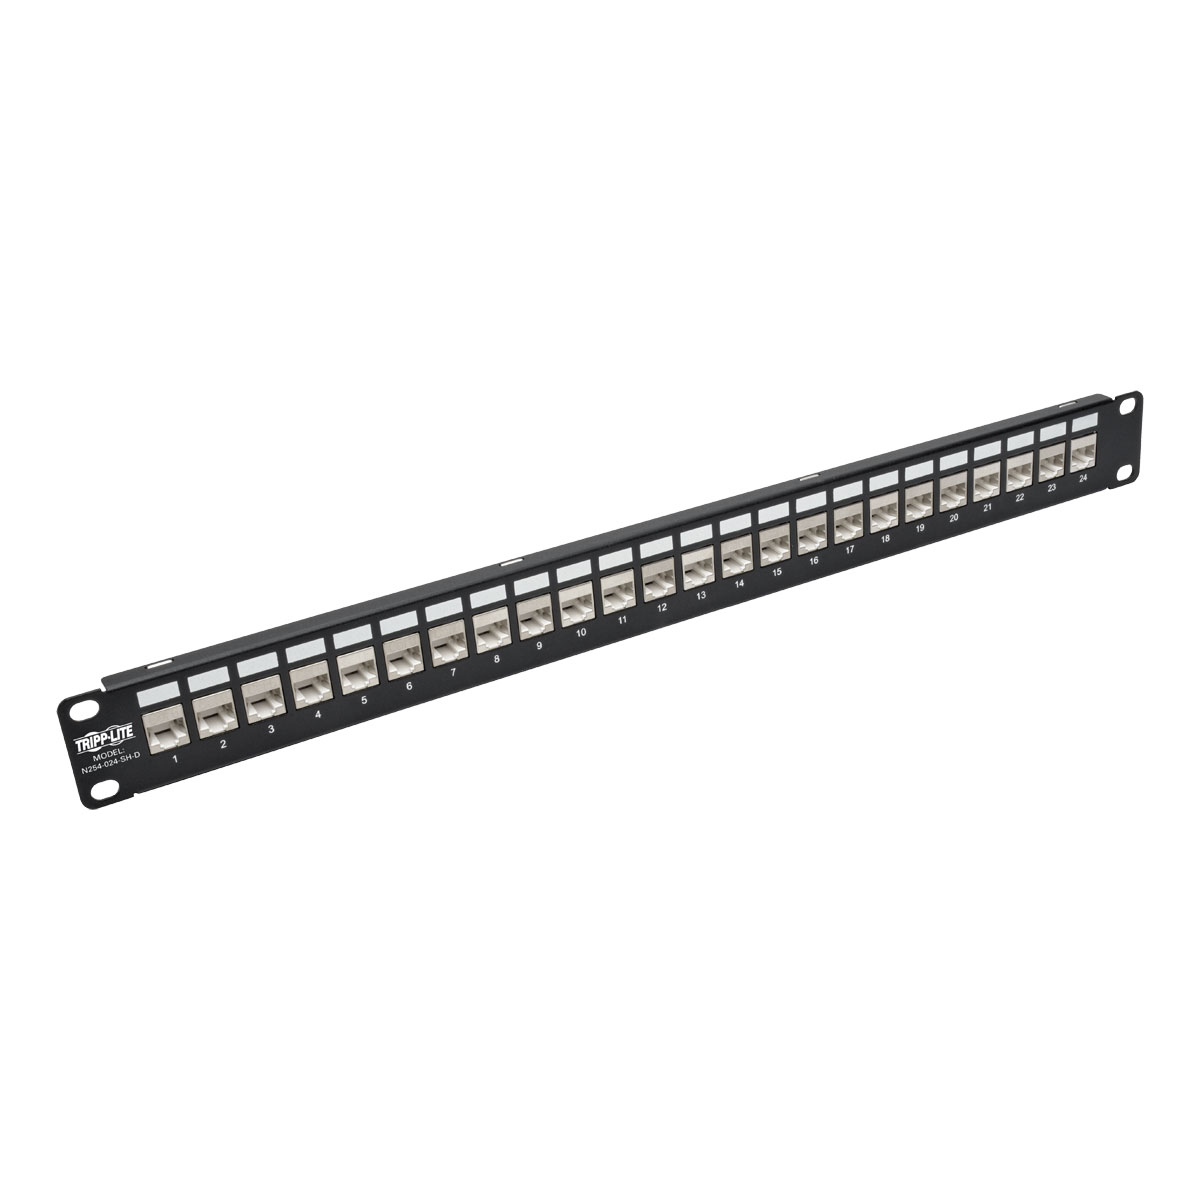 Tripp Lite 24-Port 1U Rack-Mount Patch Panel for Cat 5e Cat 6 RJ45 Ethernet  Feedthrough STP Shielded w/ 90 Degree Down Angle Ports - patch panel - 1U